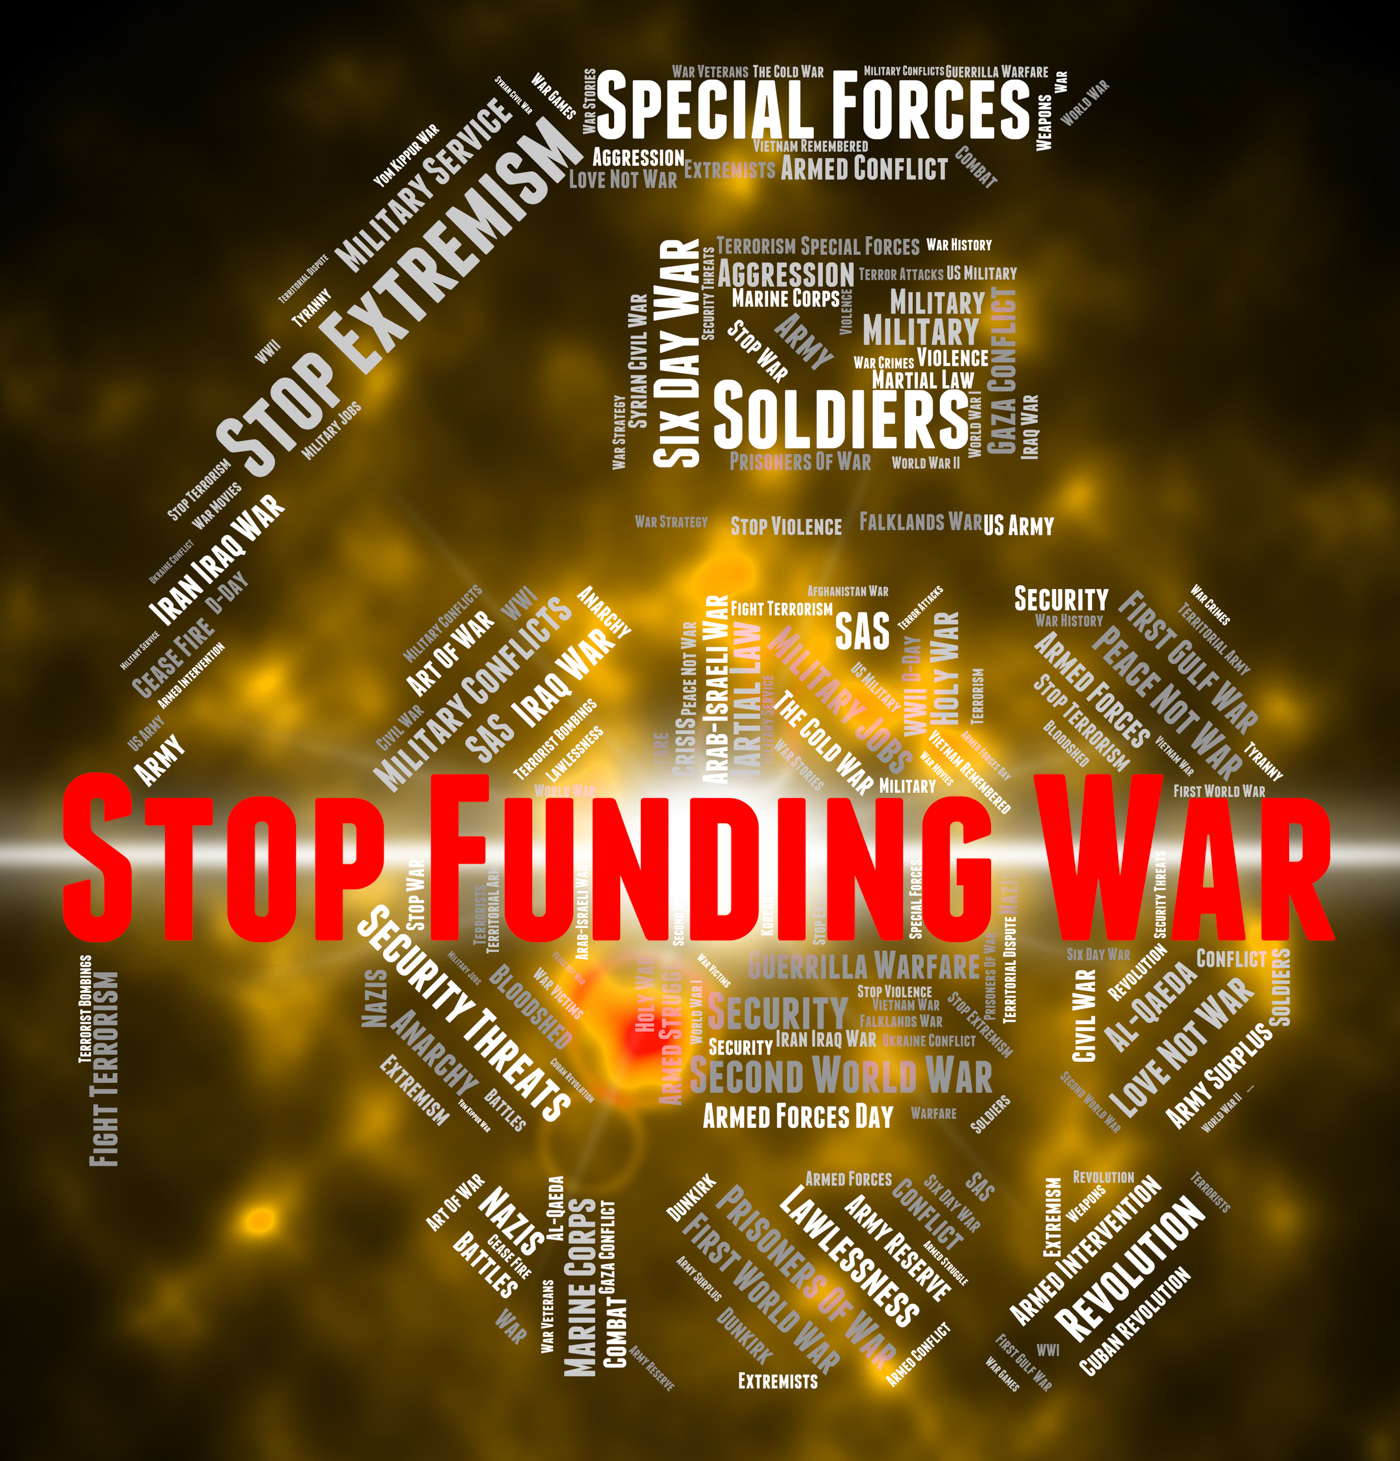 Stop funding war indicates military action and conflict photo